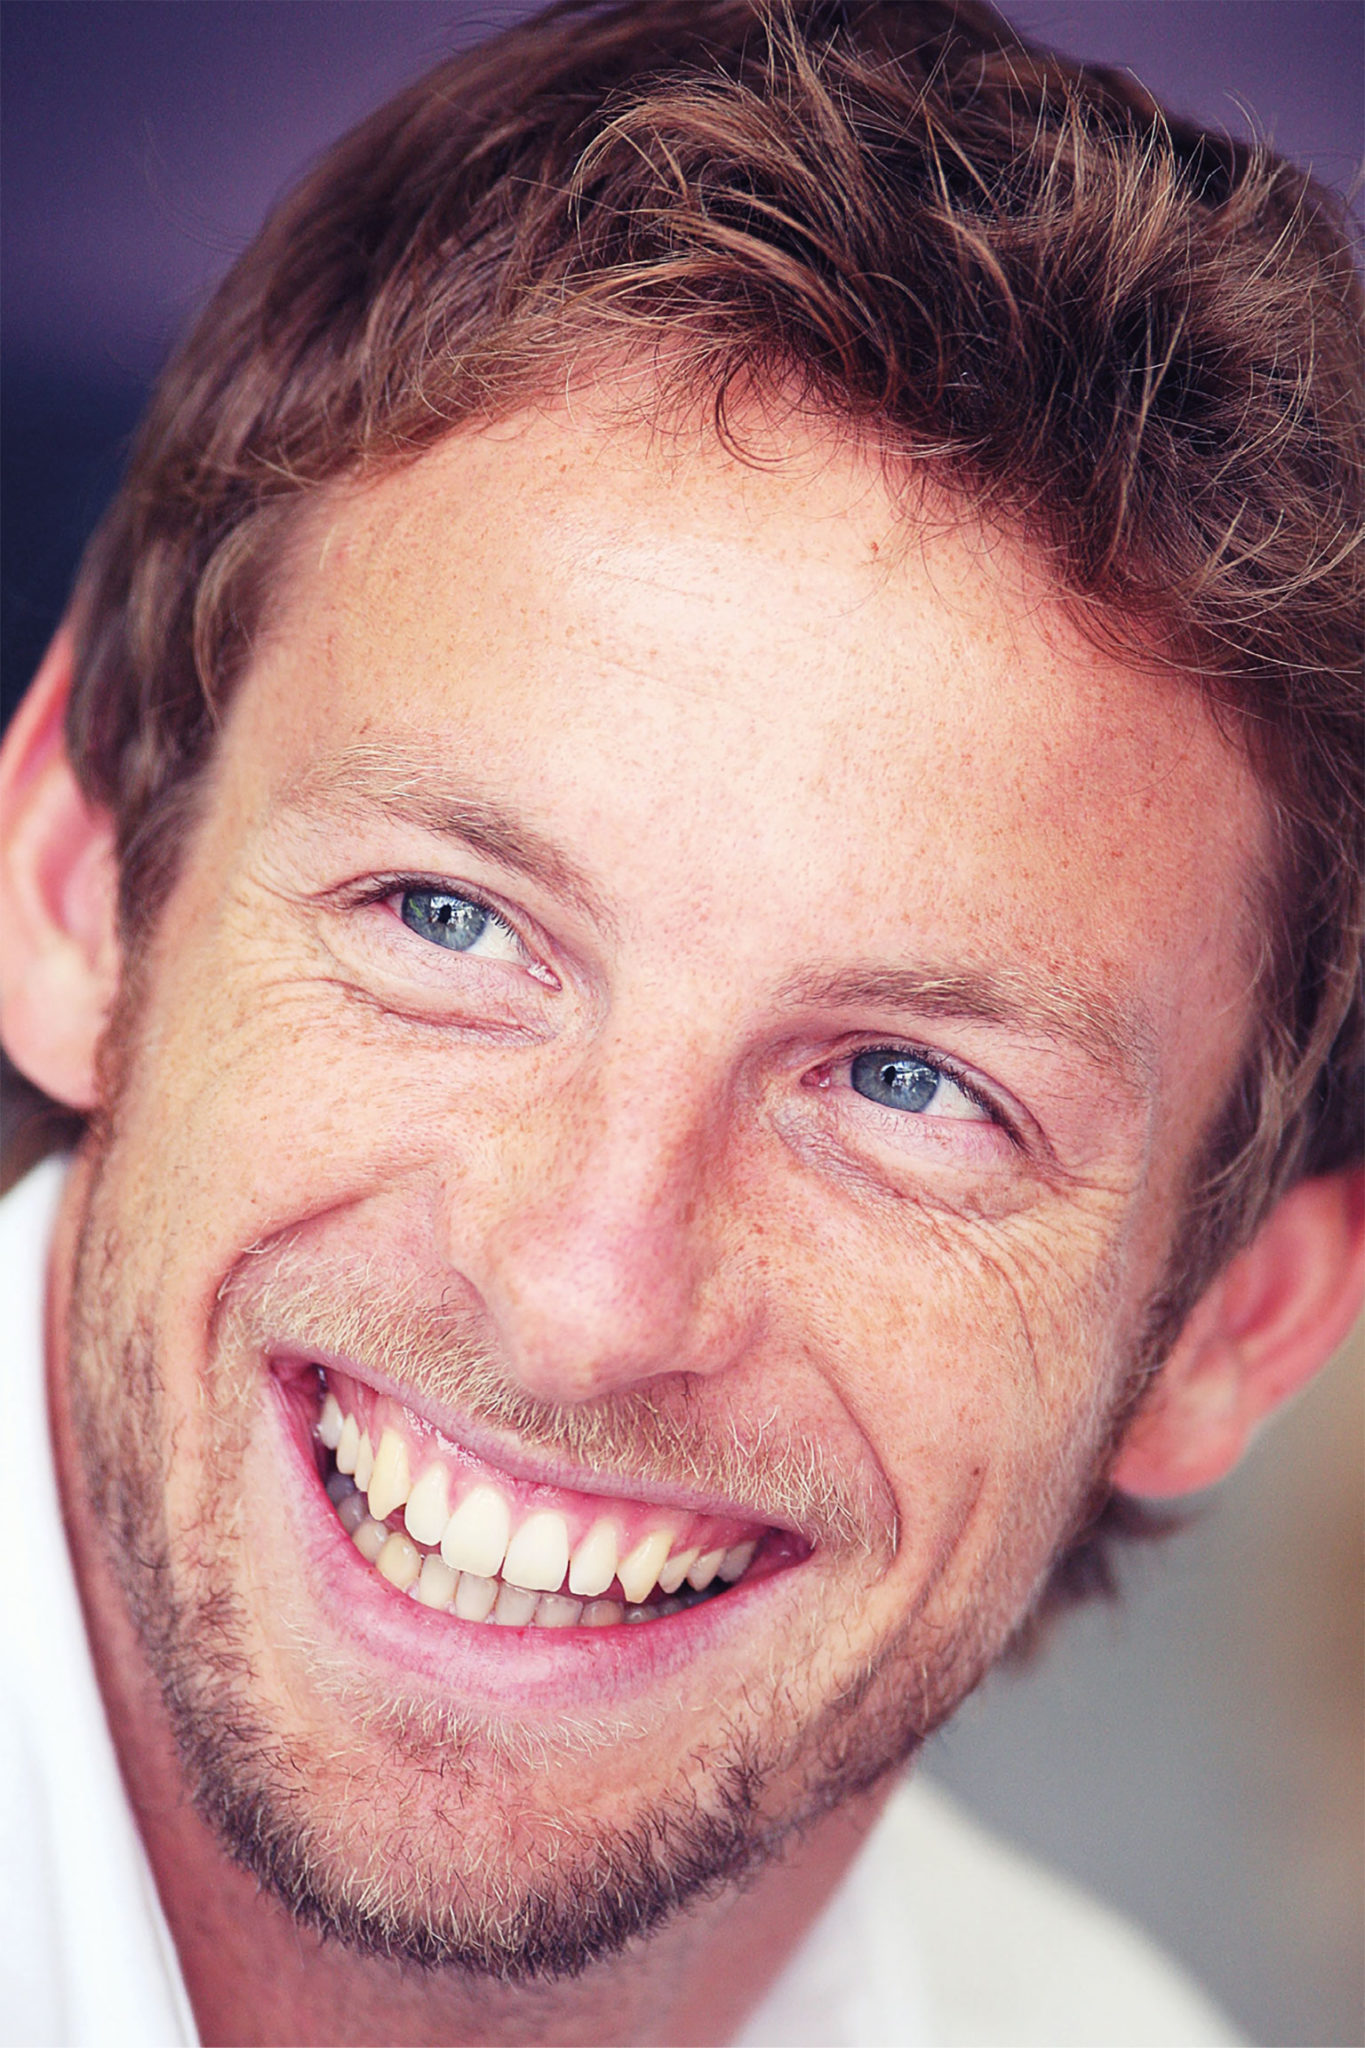 Button secured the 2009 world title having won six of the opening seven races, but only managed two more podium finishes over the final 10 grands prix